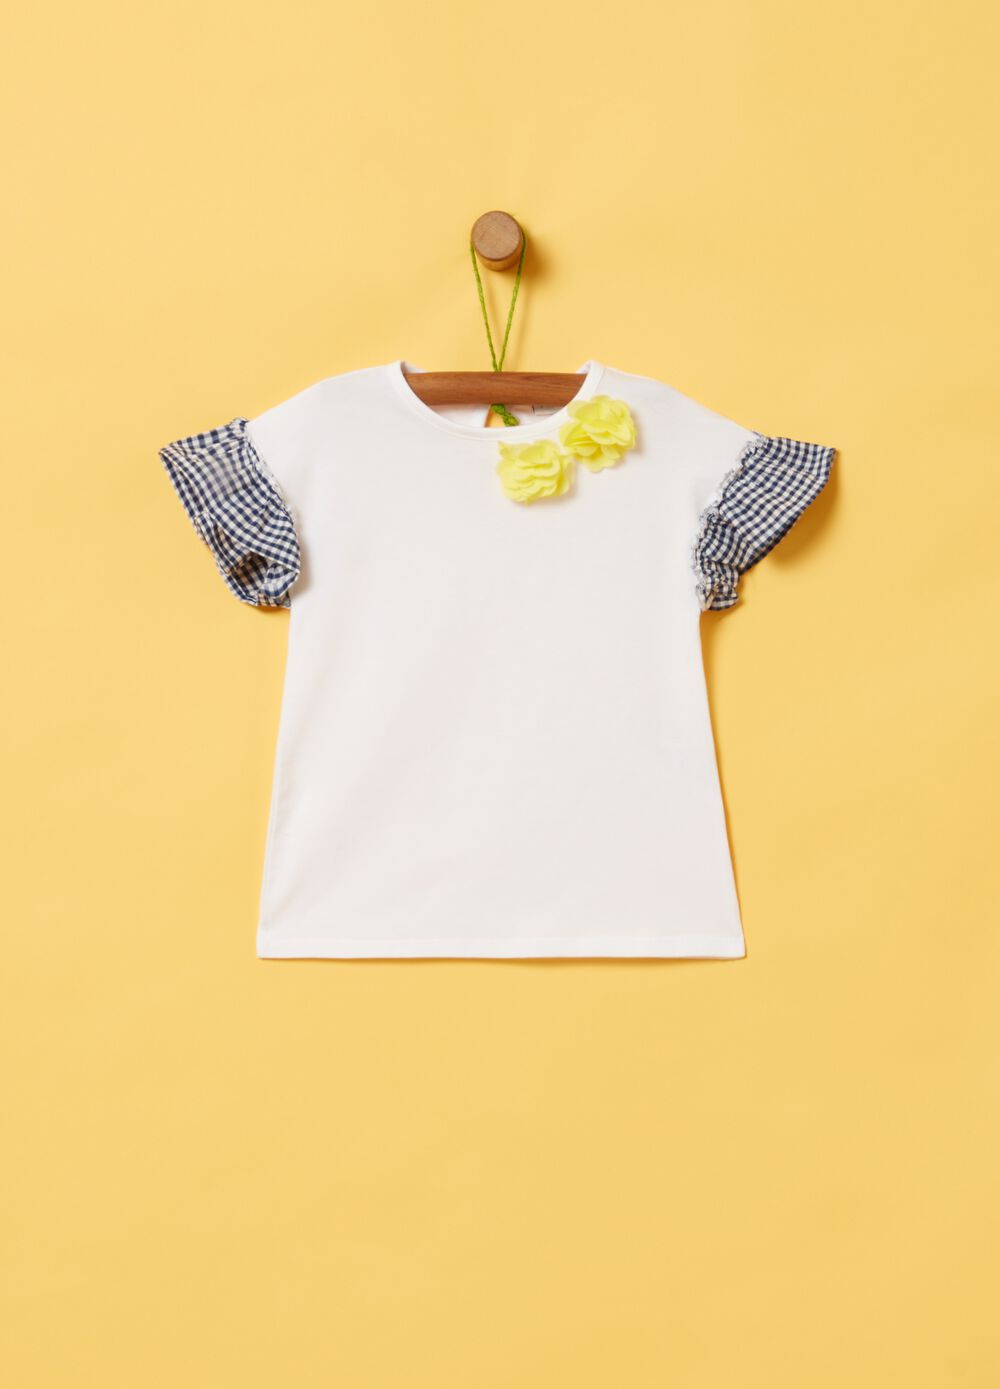 Organic cotton T-shirt with small flowers